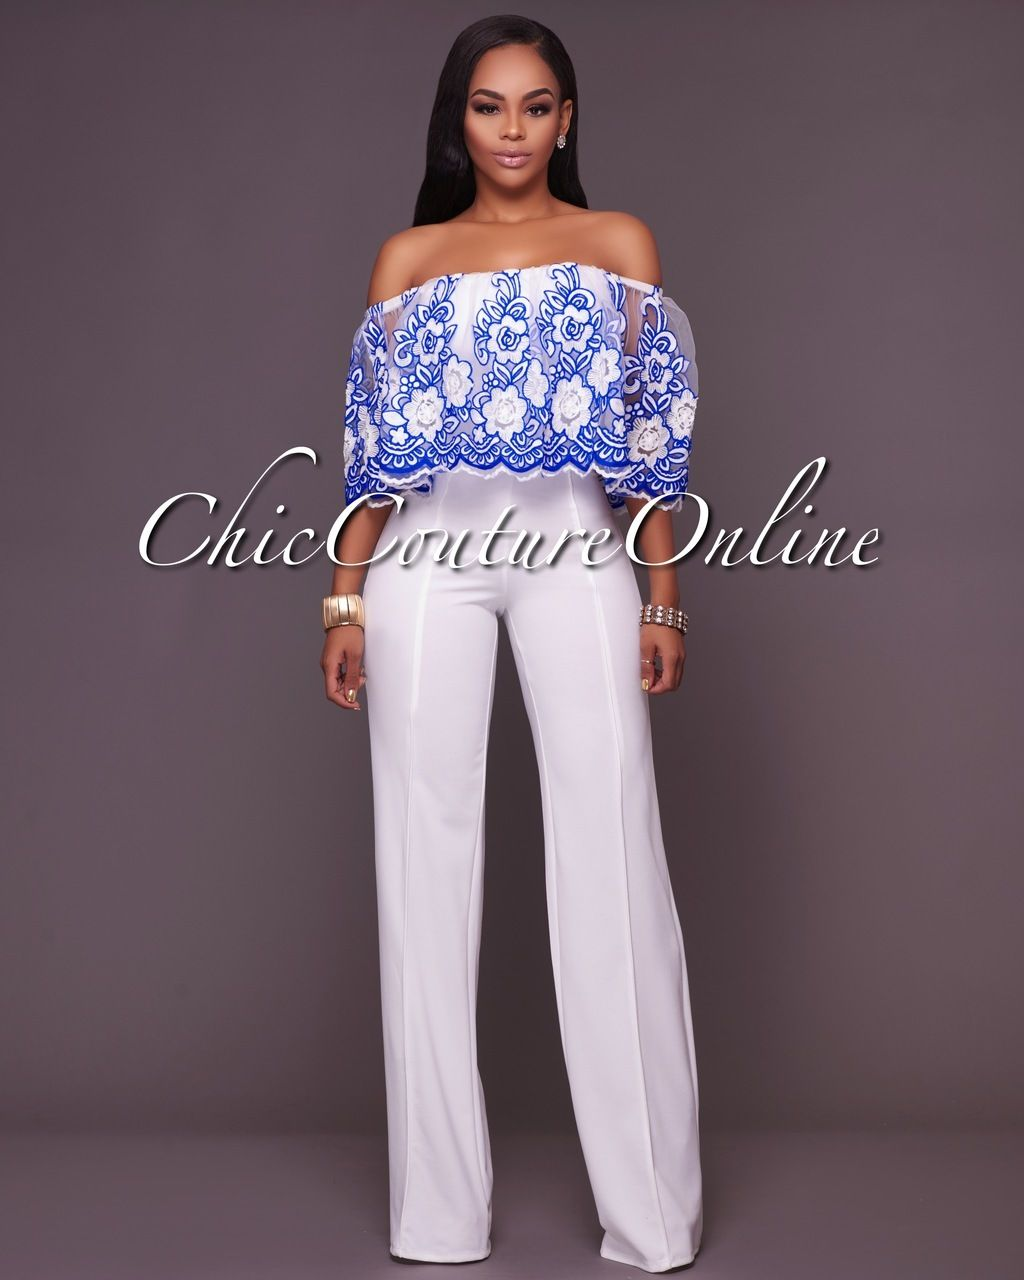 96c65586c0e Pin by Chic Couture Online on Clothing ~ Chic Couture Online ...